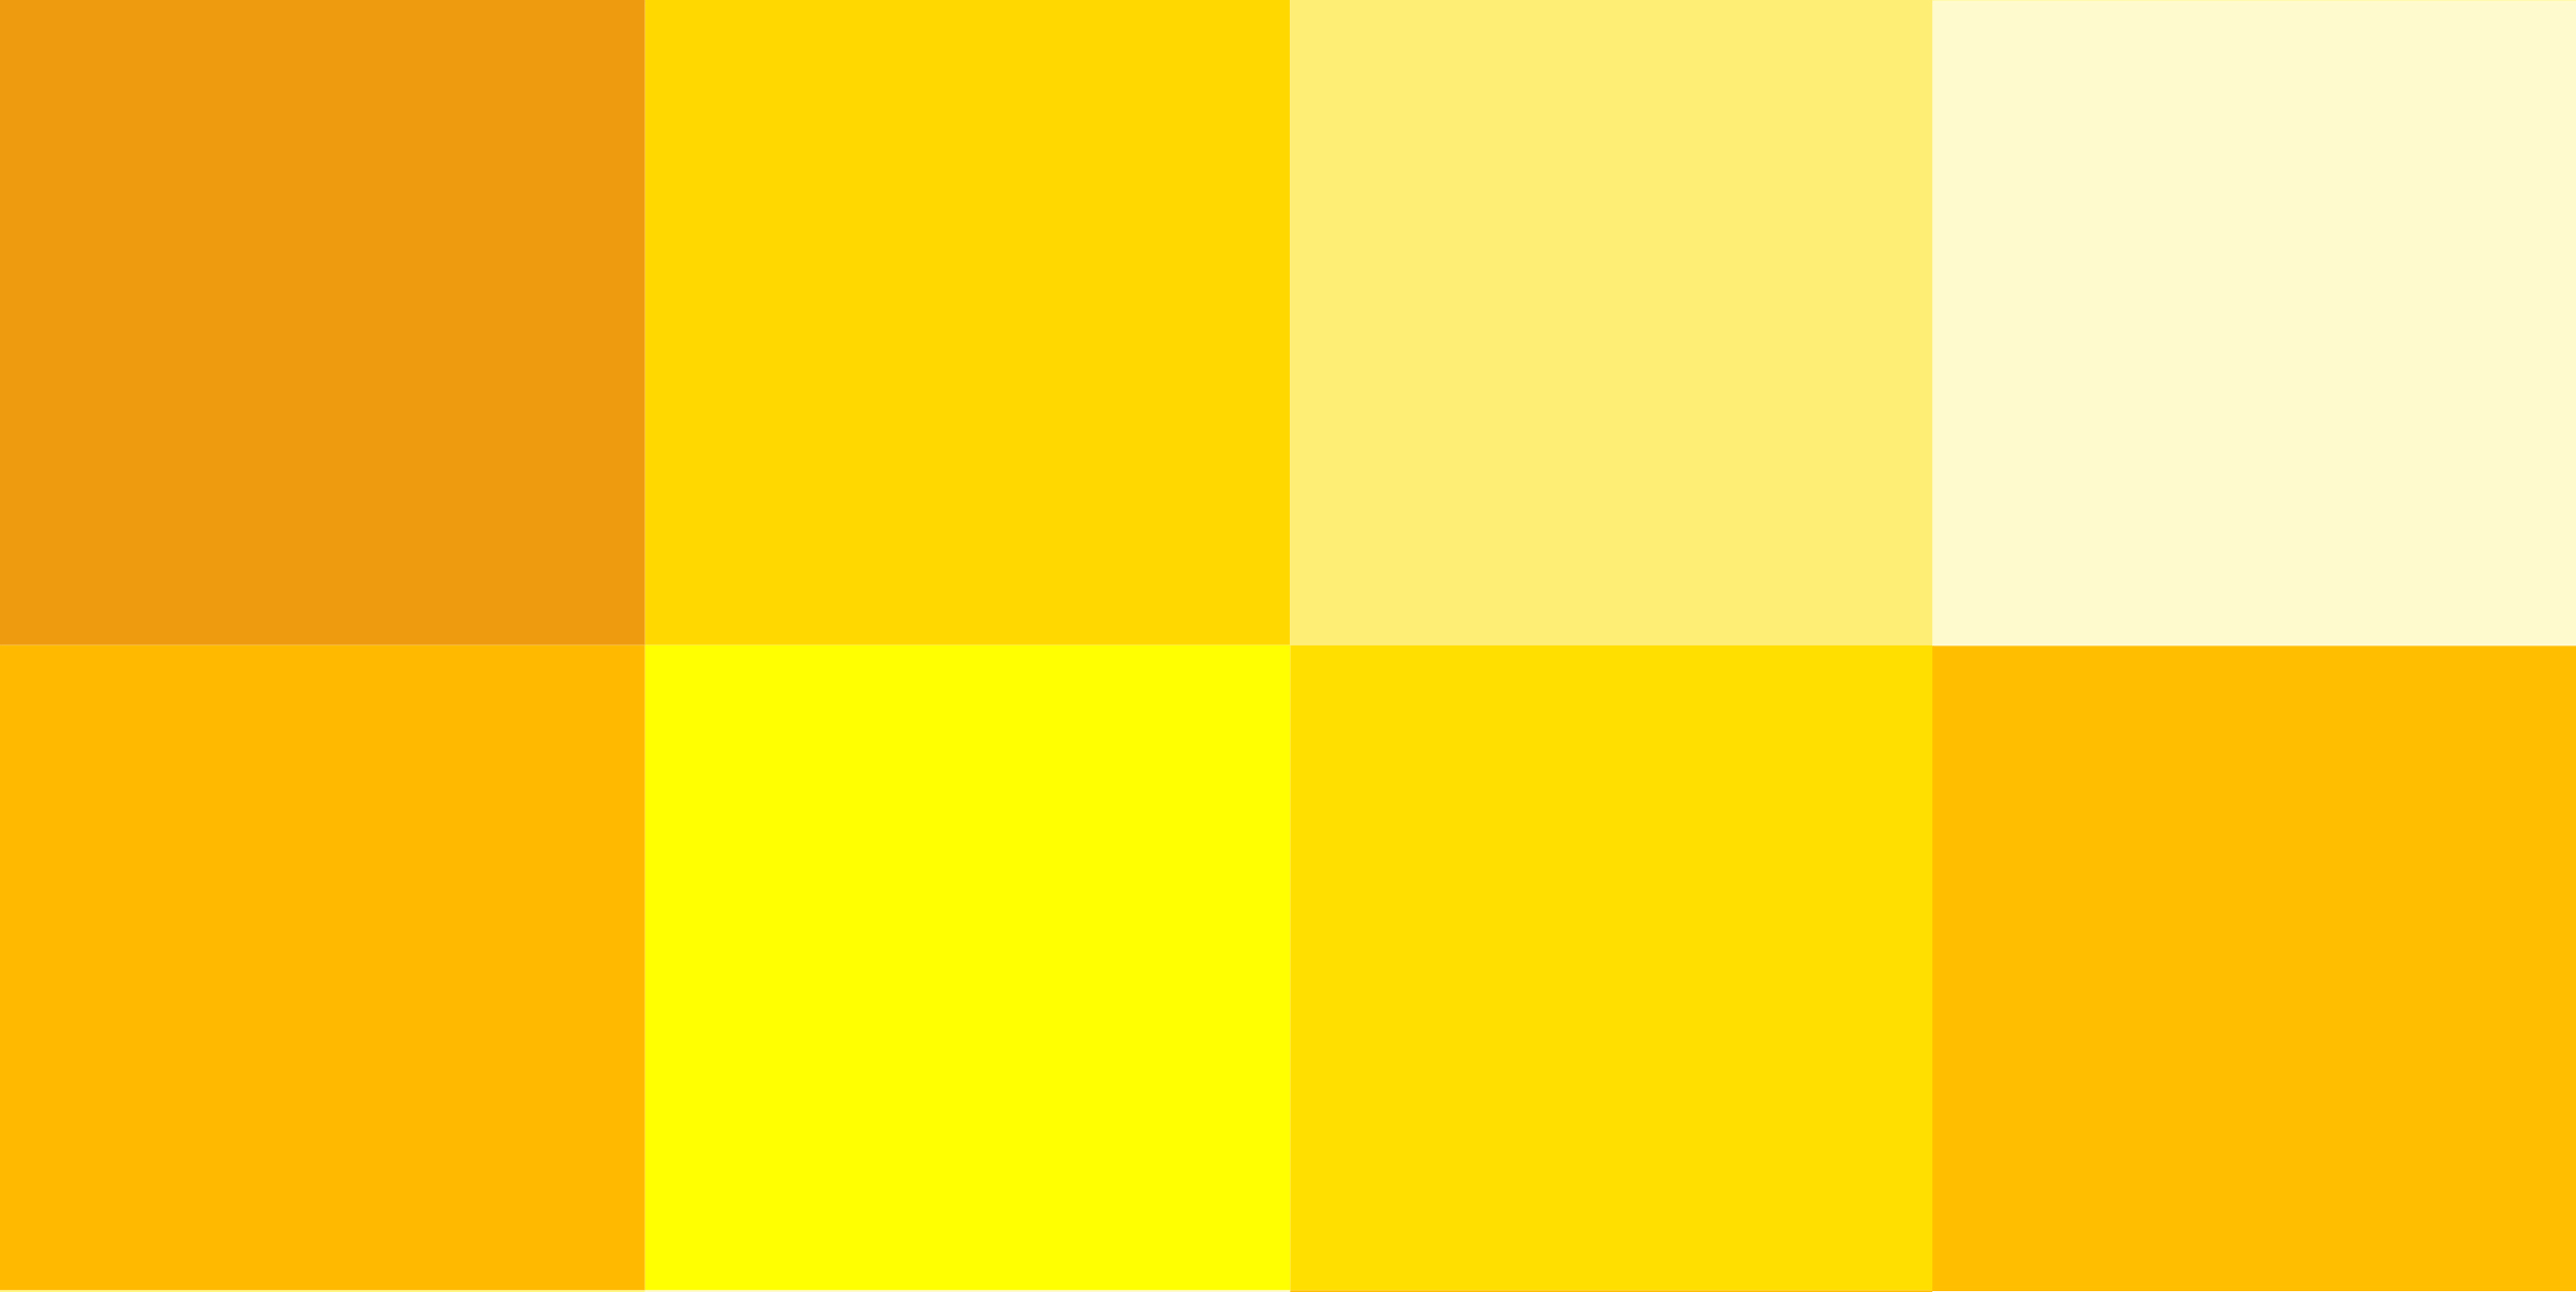 Design Yellow Color Schemes warm color scheme theory for home decoration roy design yellow scheme